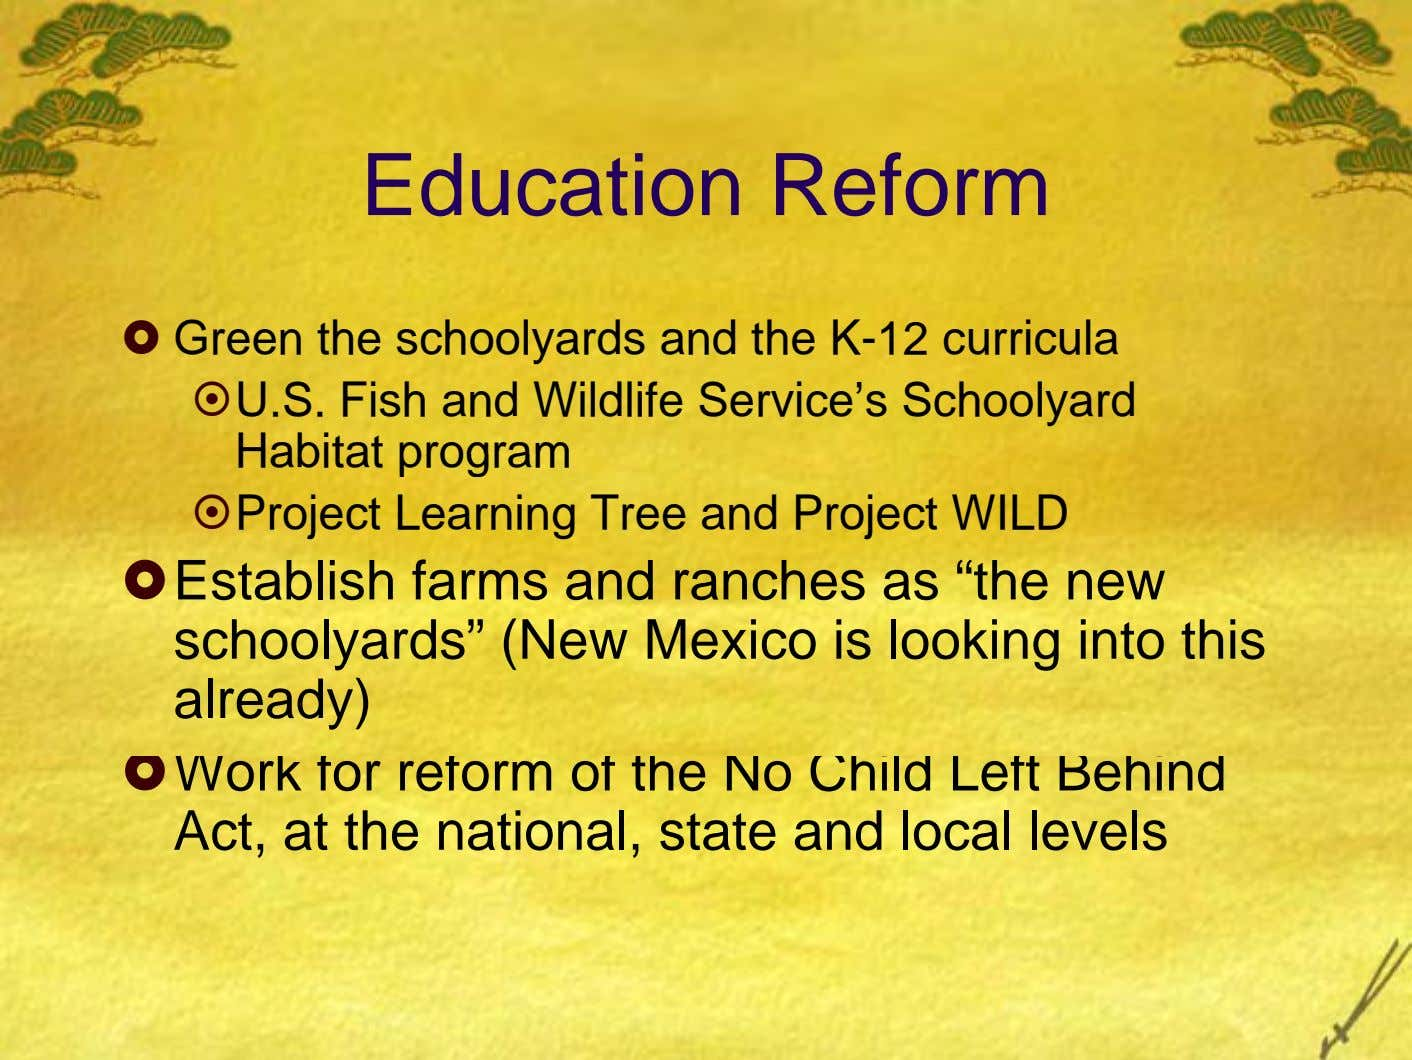 Education Reform Green the schoolyards and the K-12 curricula U.S. Fish and Wildlife Service's Schoolyard Habitat